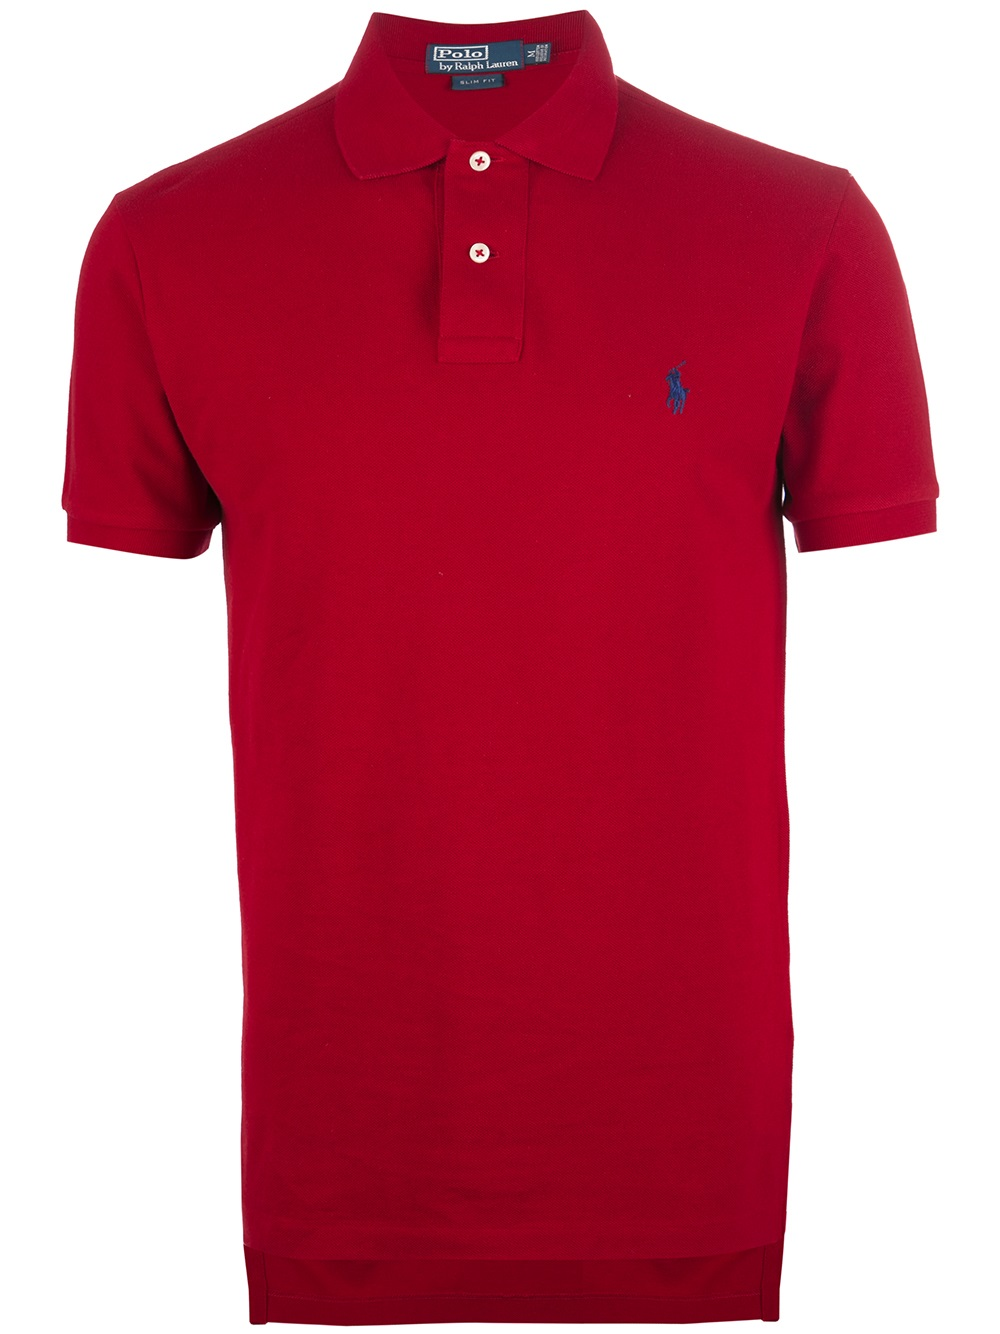 Polo ralph lauren slim fit polo shirt in red for men lyst for Mens slim fit polo shirt